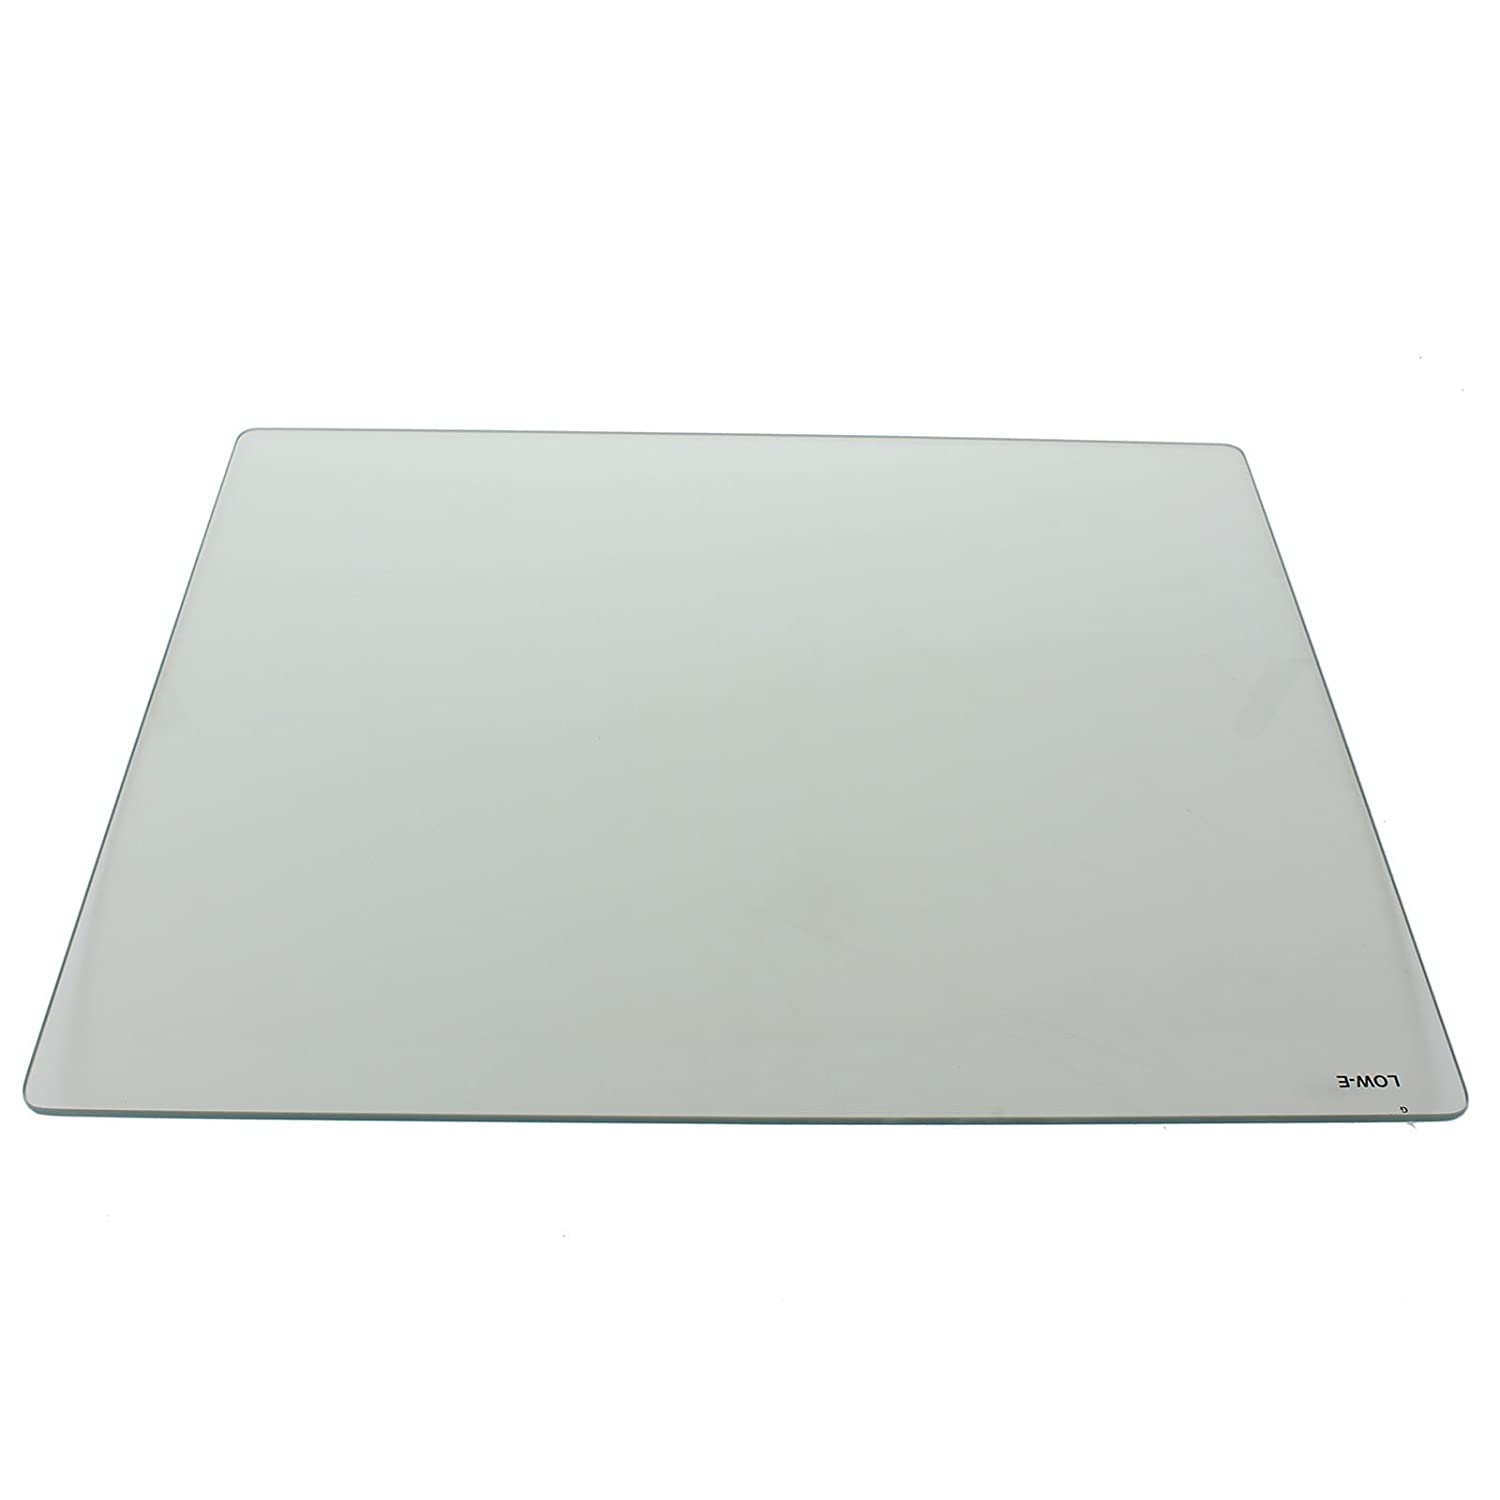 Diplomat Oven / Cooker Main Inner Door Glass with Rounded Edges [Energy Class A+++] Diplomat 300150069